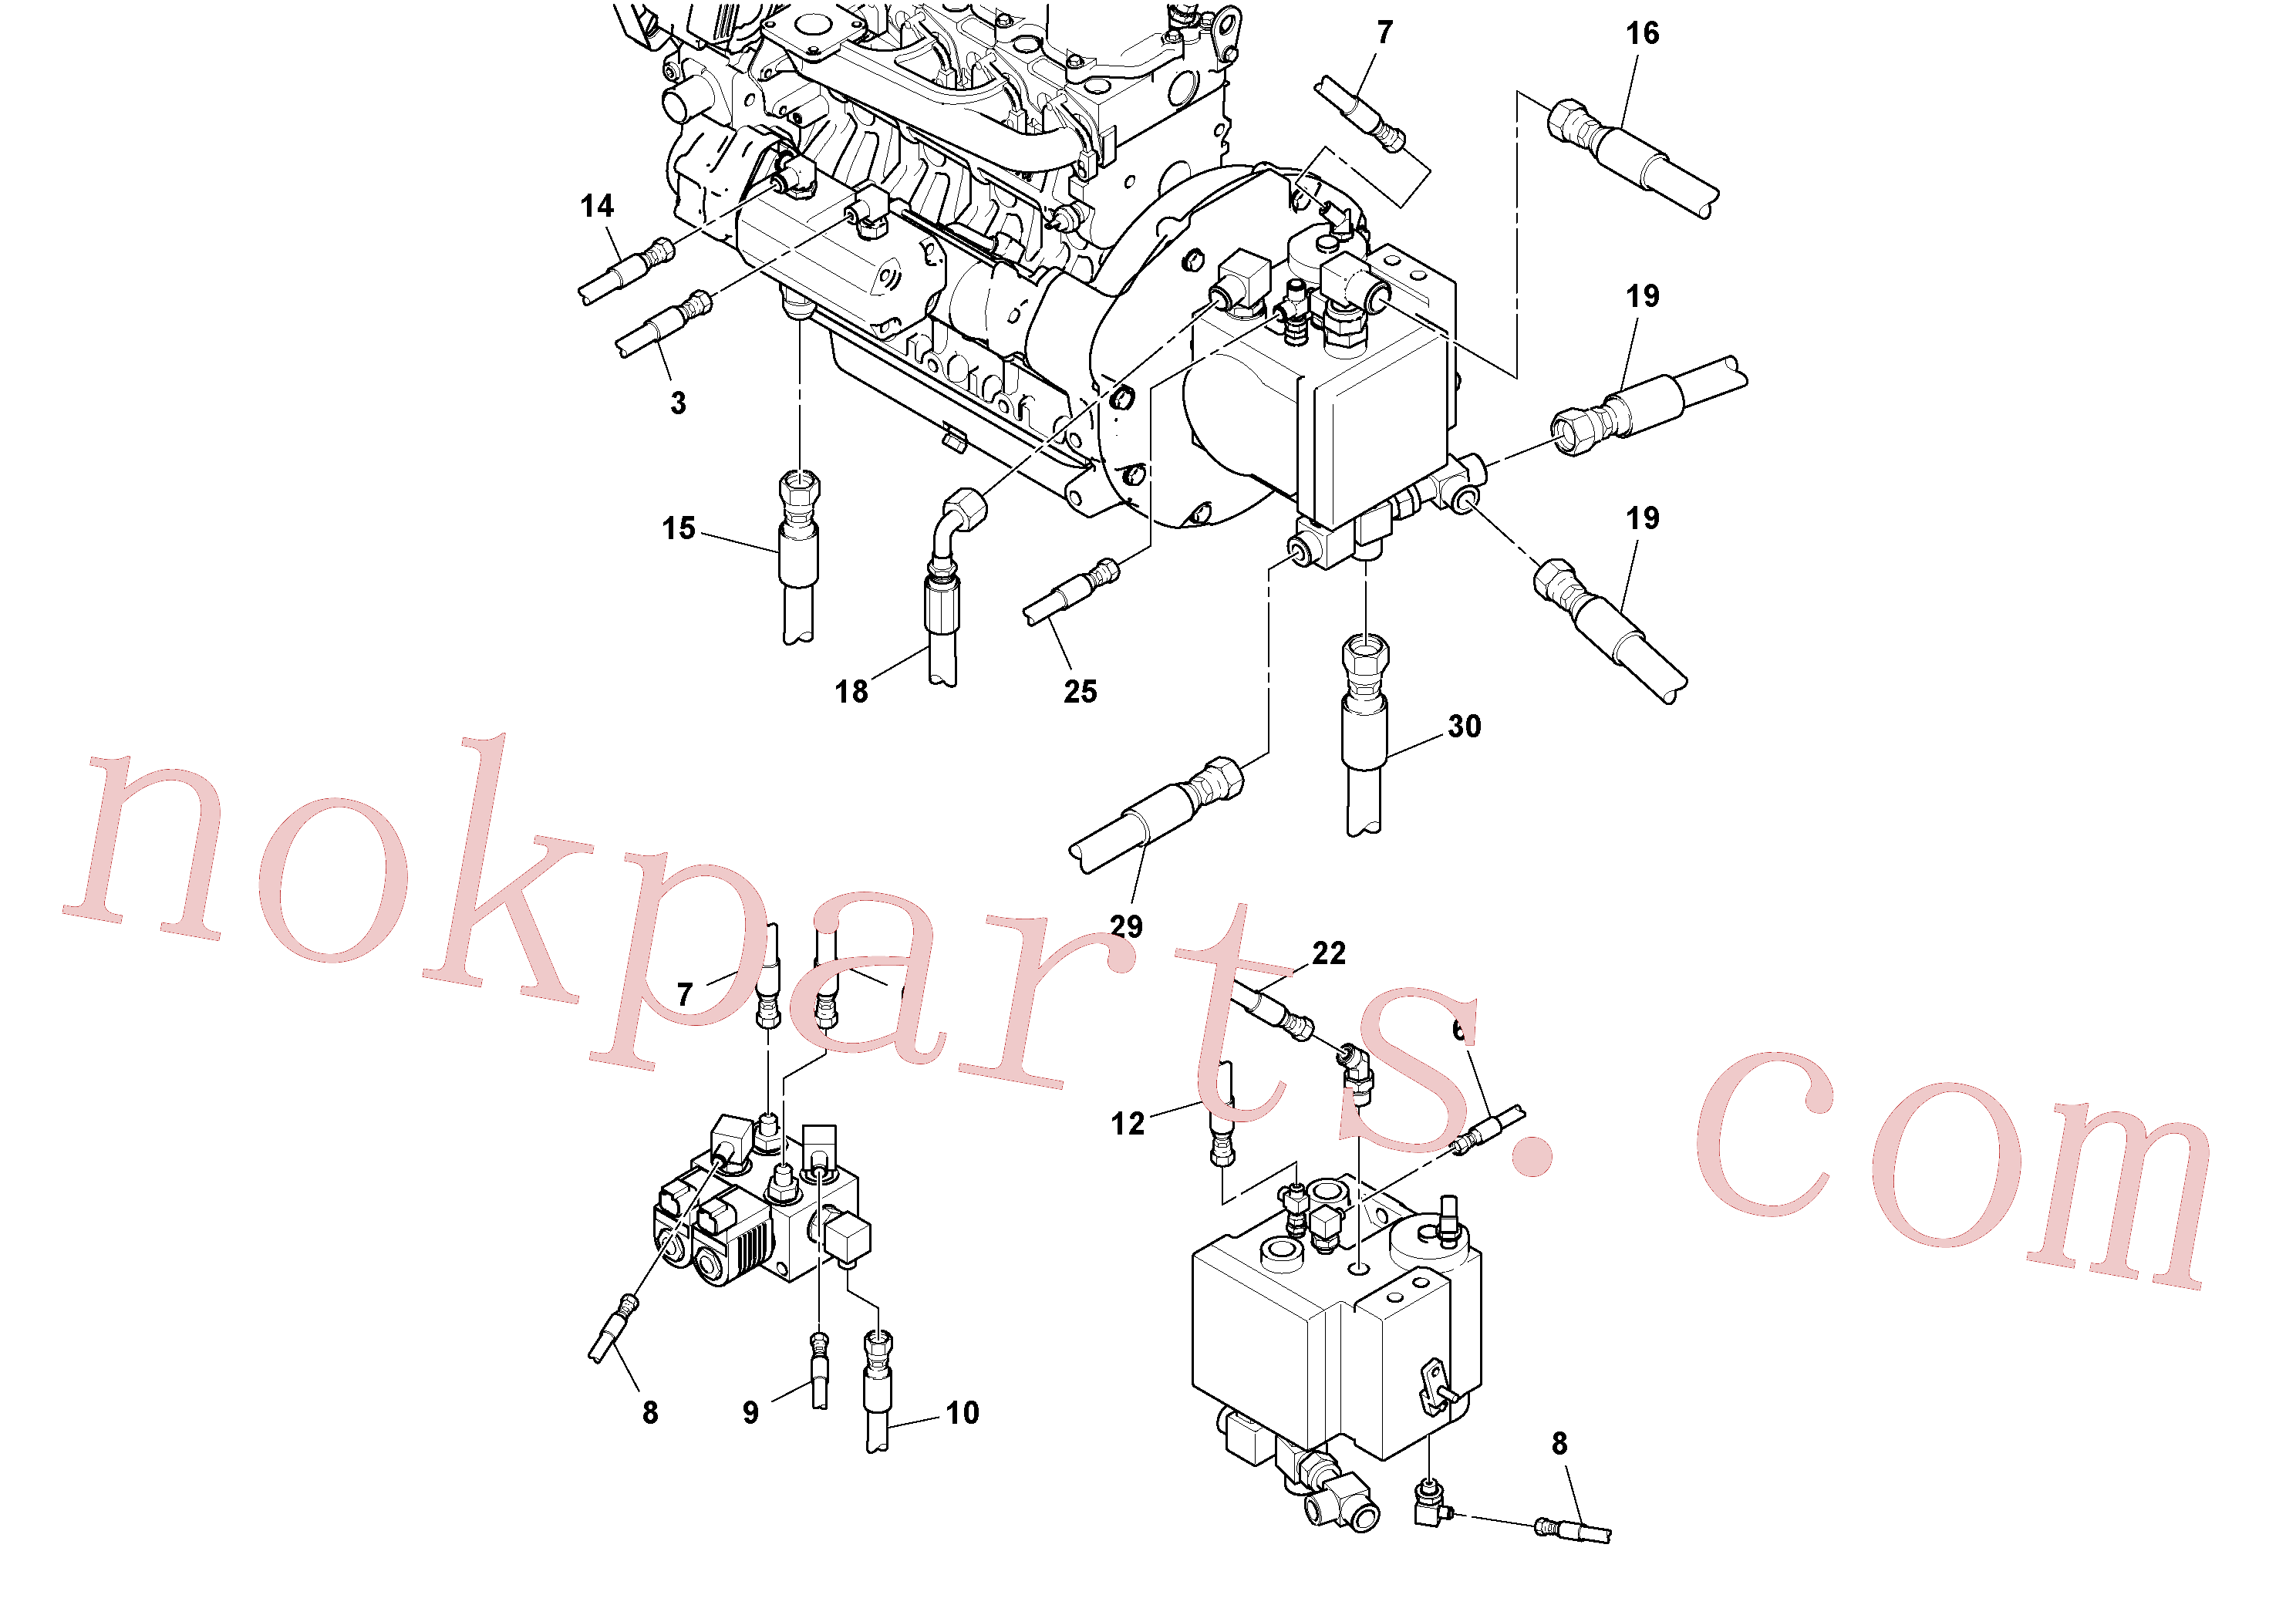 RM13365226 for Volvo Rear Frame Hoses Installation(1051405 assembly)